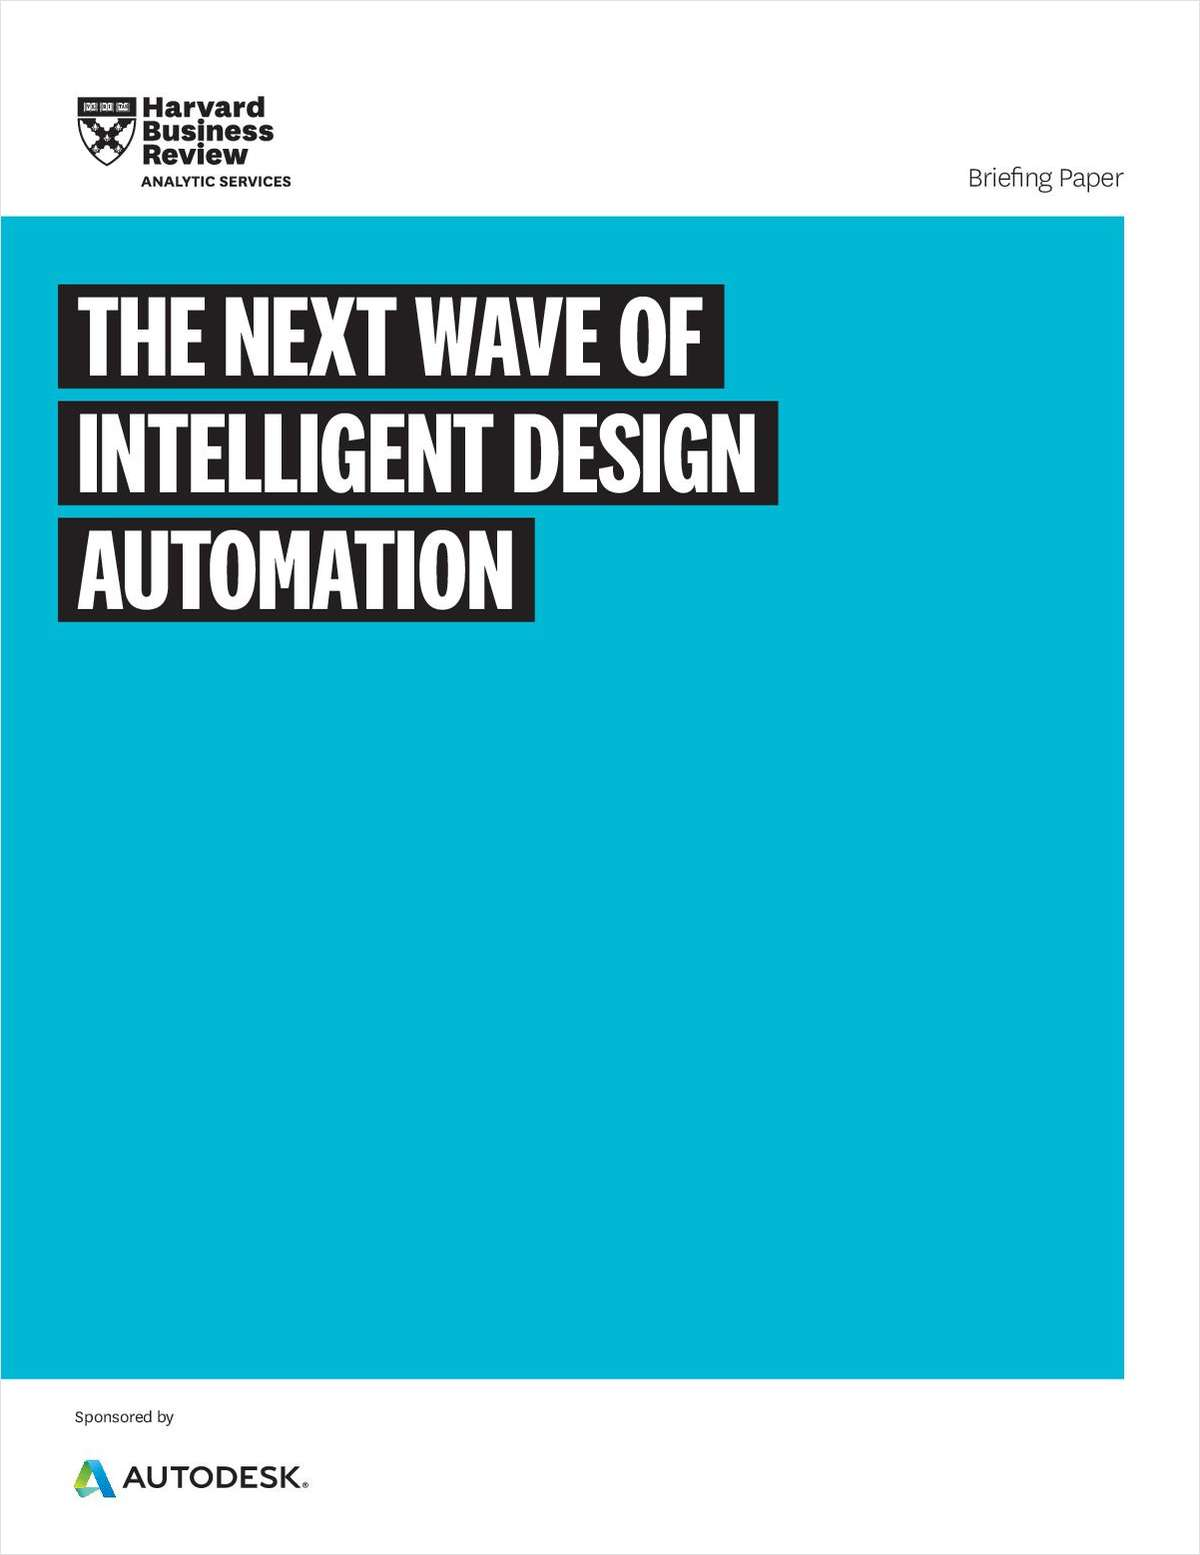 The Next Wave of Intelligent Design Automation